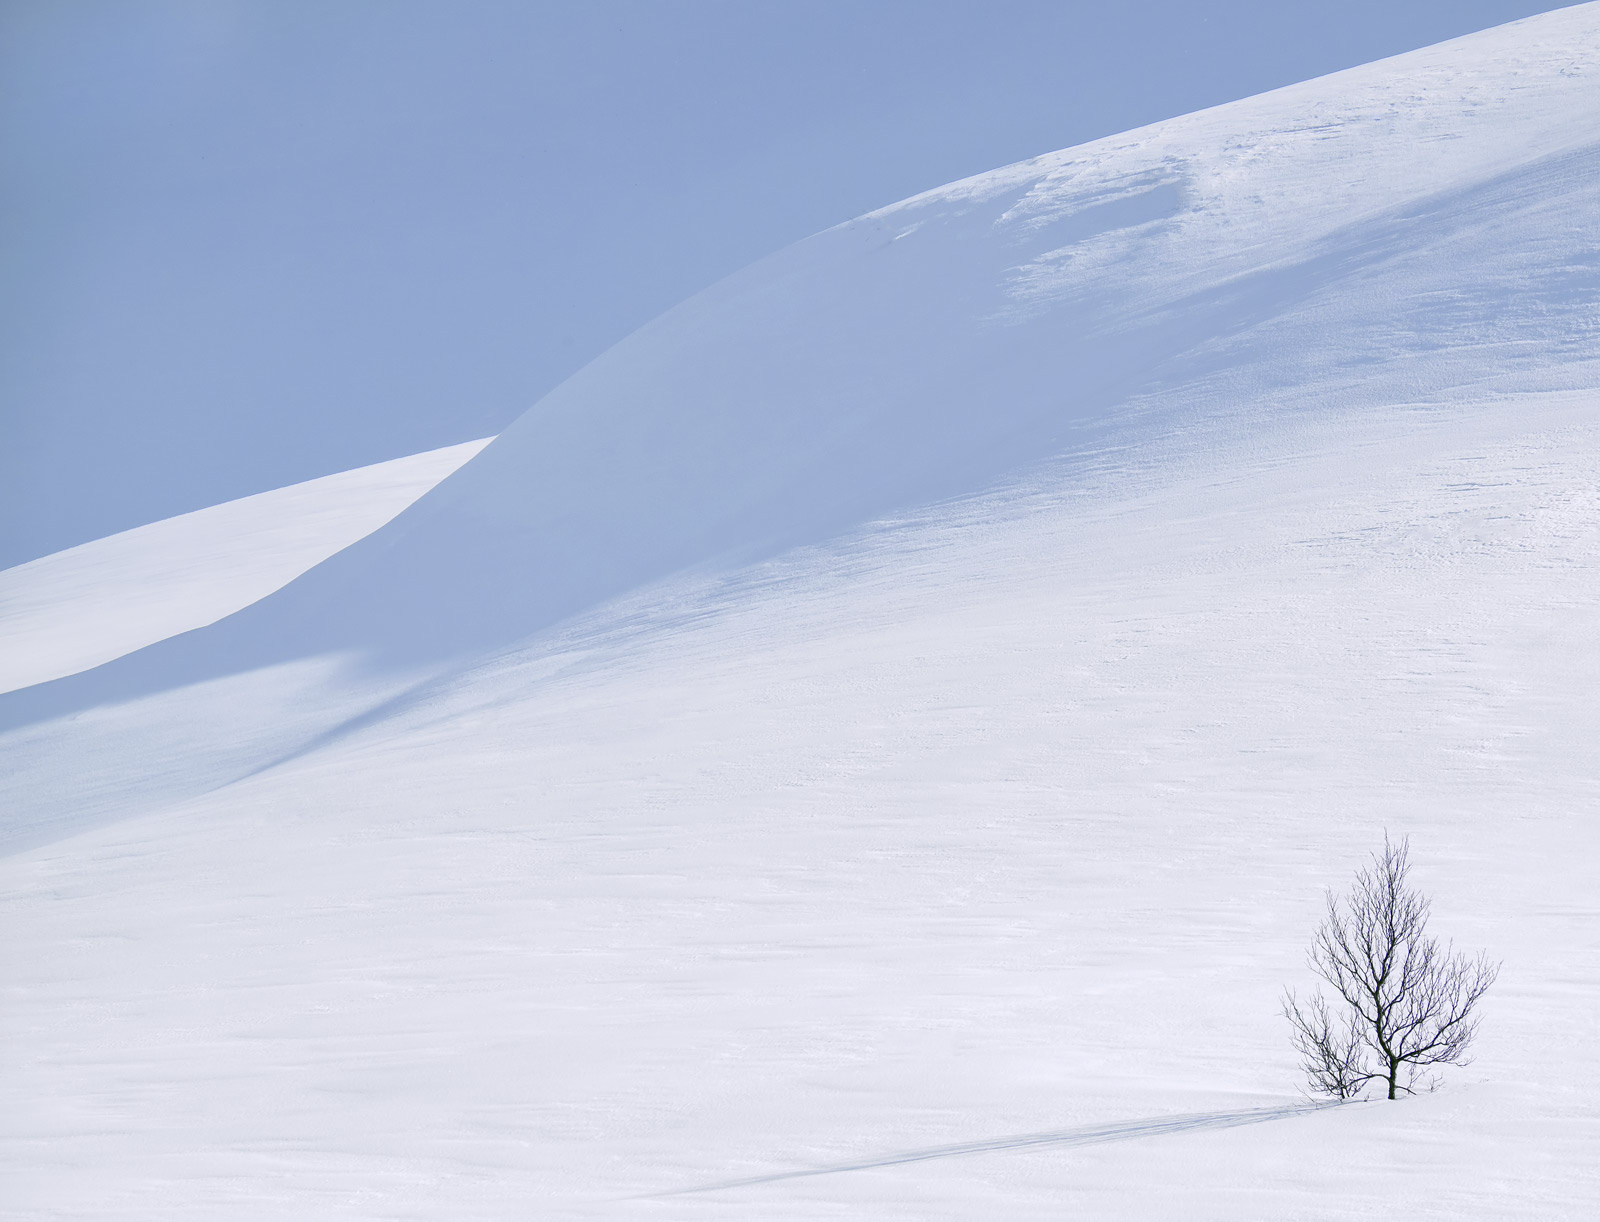 Anderdalen National Park is in a high mountainous plateau which in winter is covered with vast snow fields punctuated by nothing...